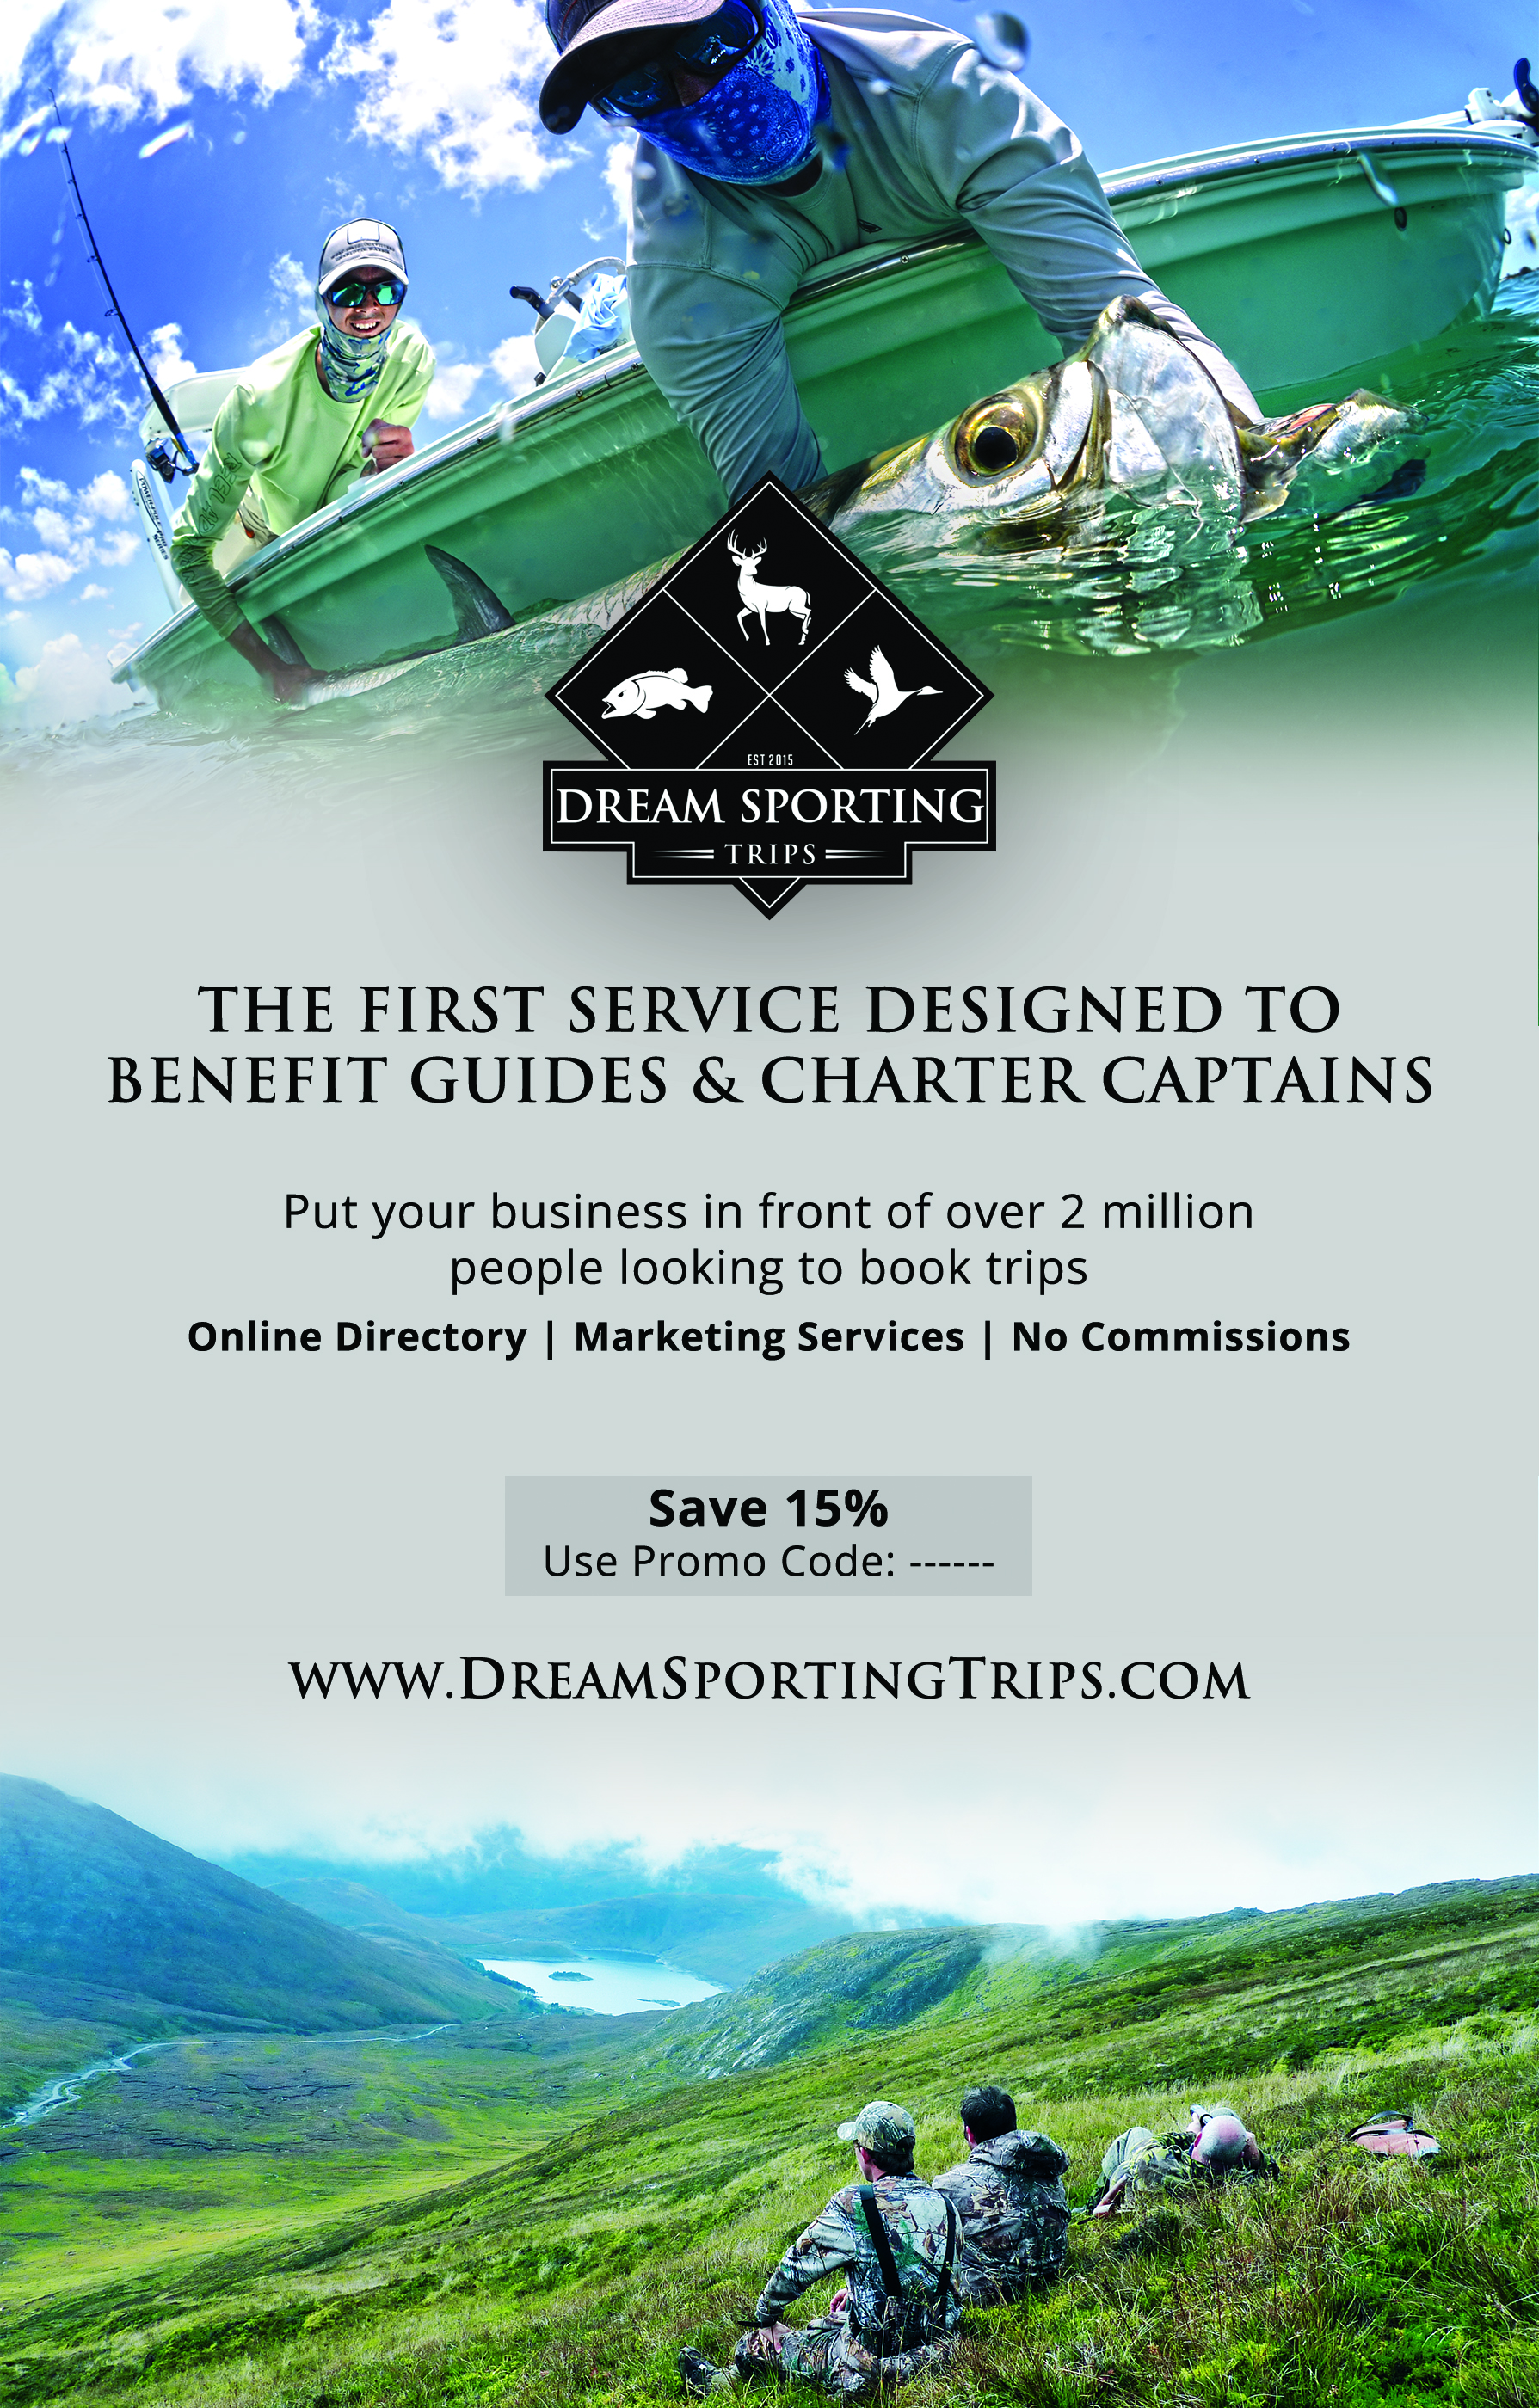 Dream Sporting Trips Magazine ad for Texas fish and game